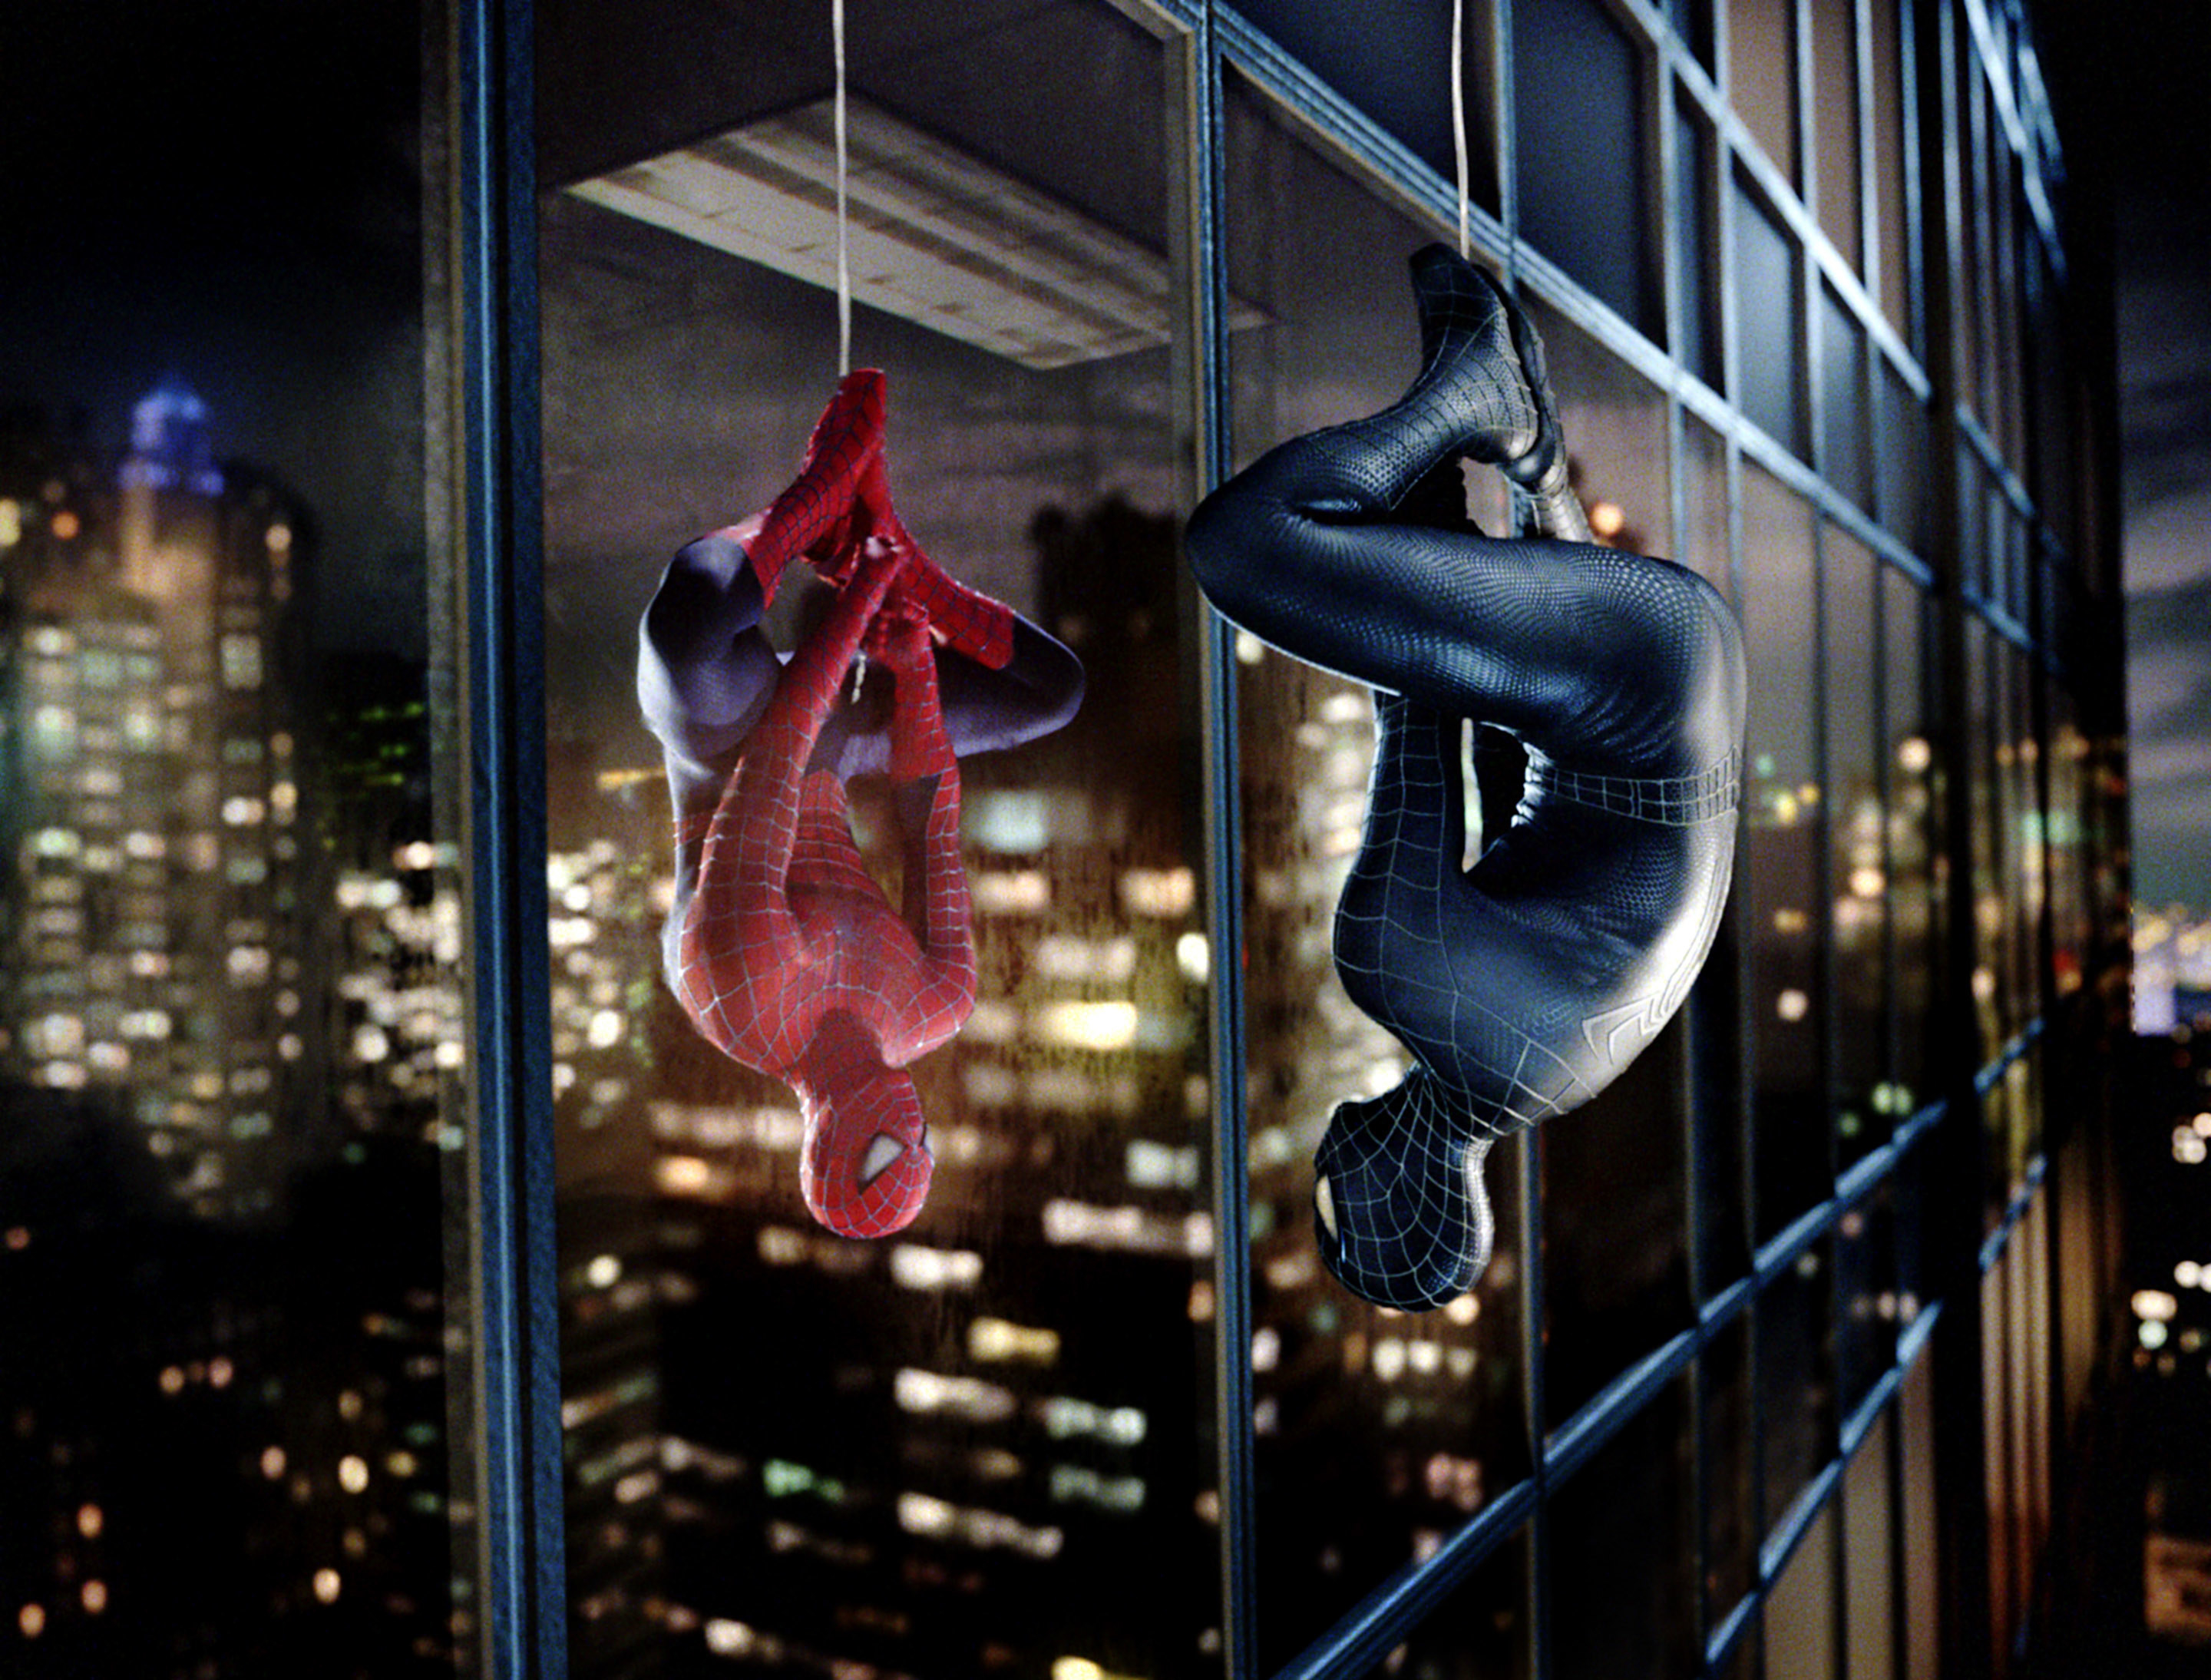 Photo of Spider-Man and Venom hanging upside down and looking at each other through a building window